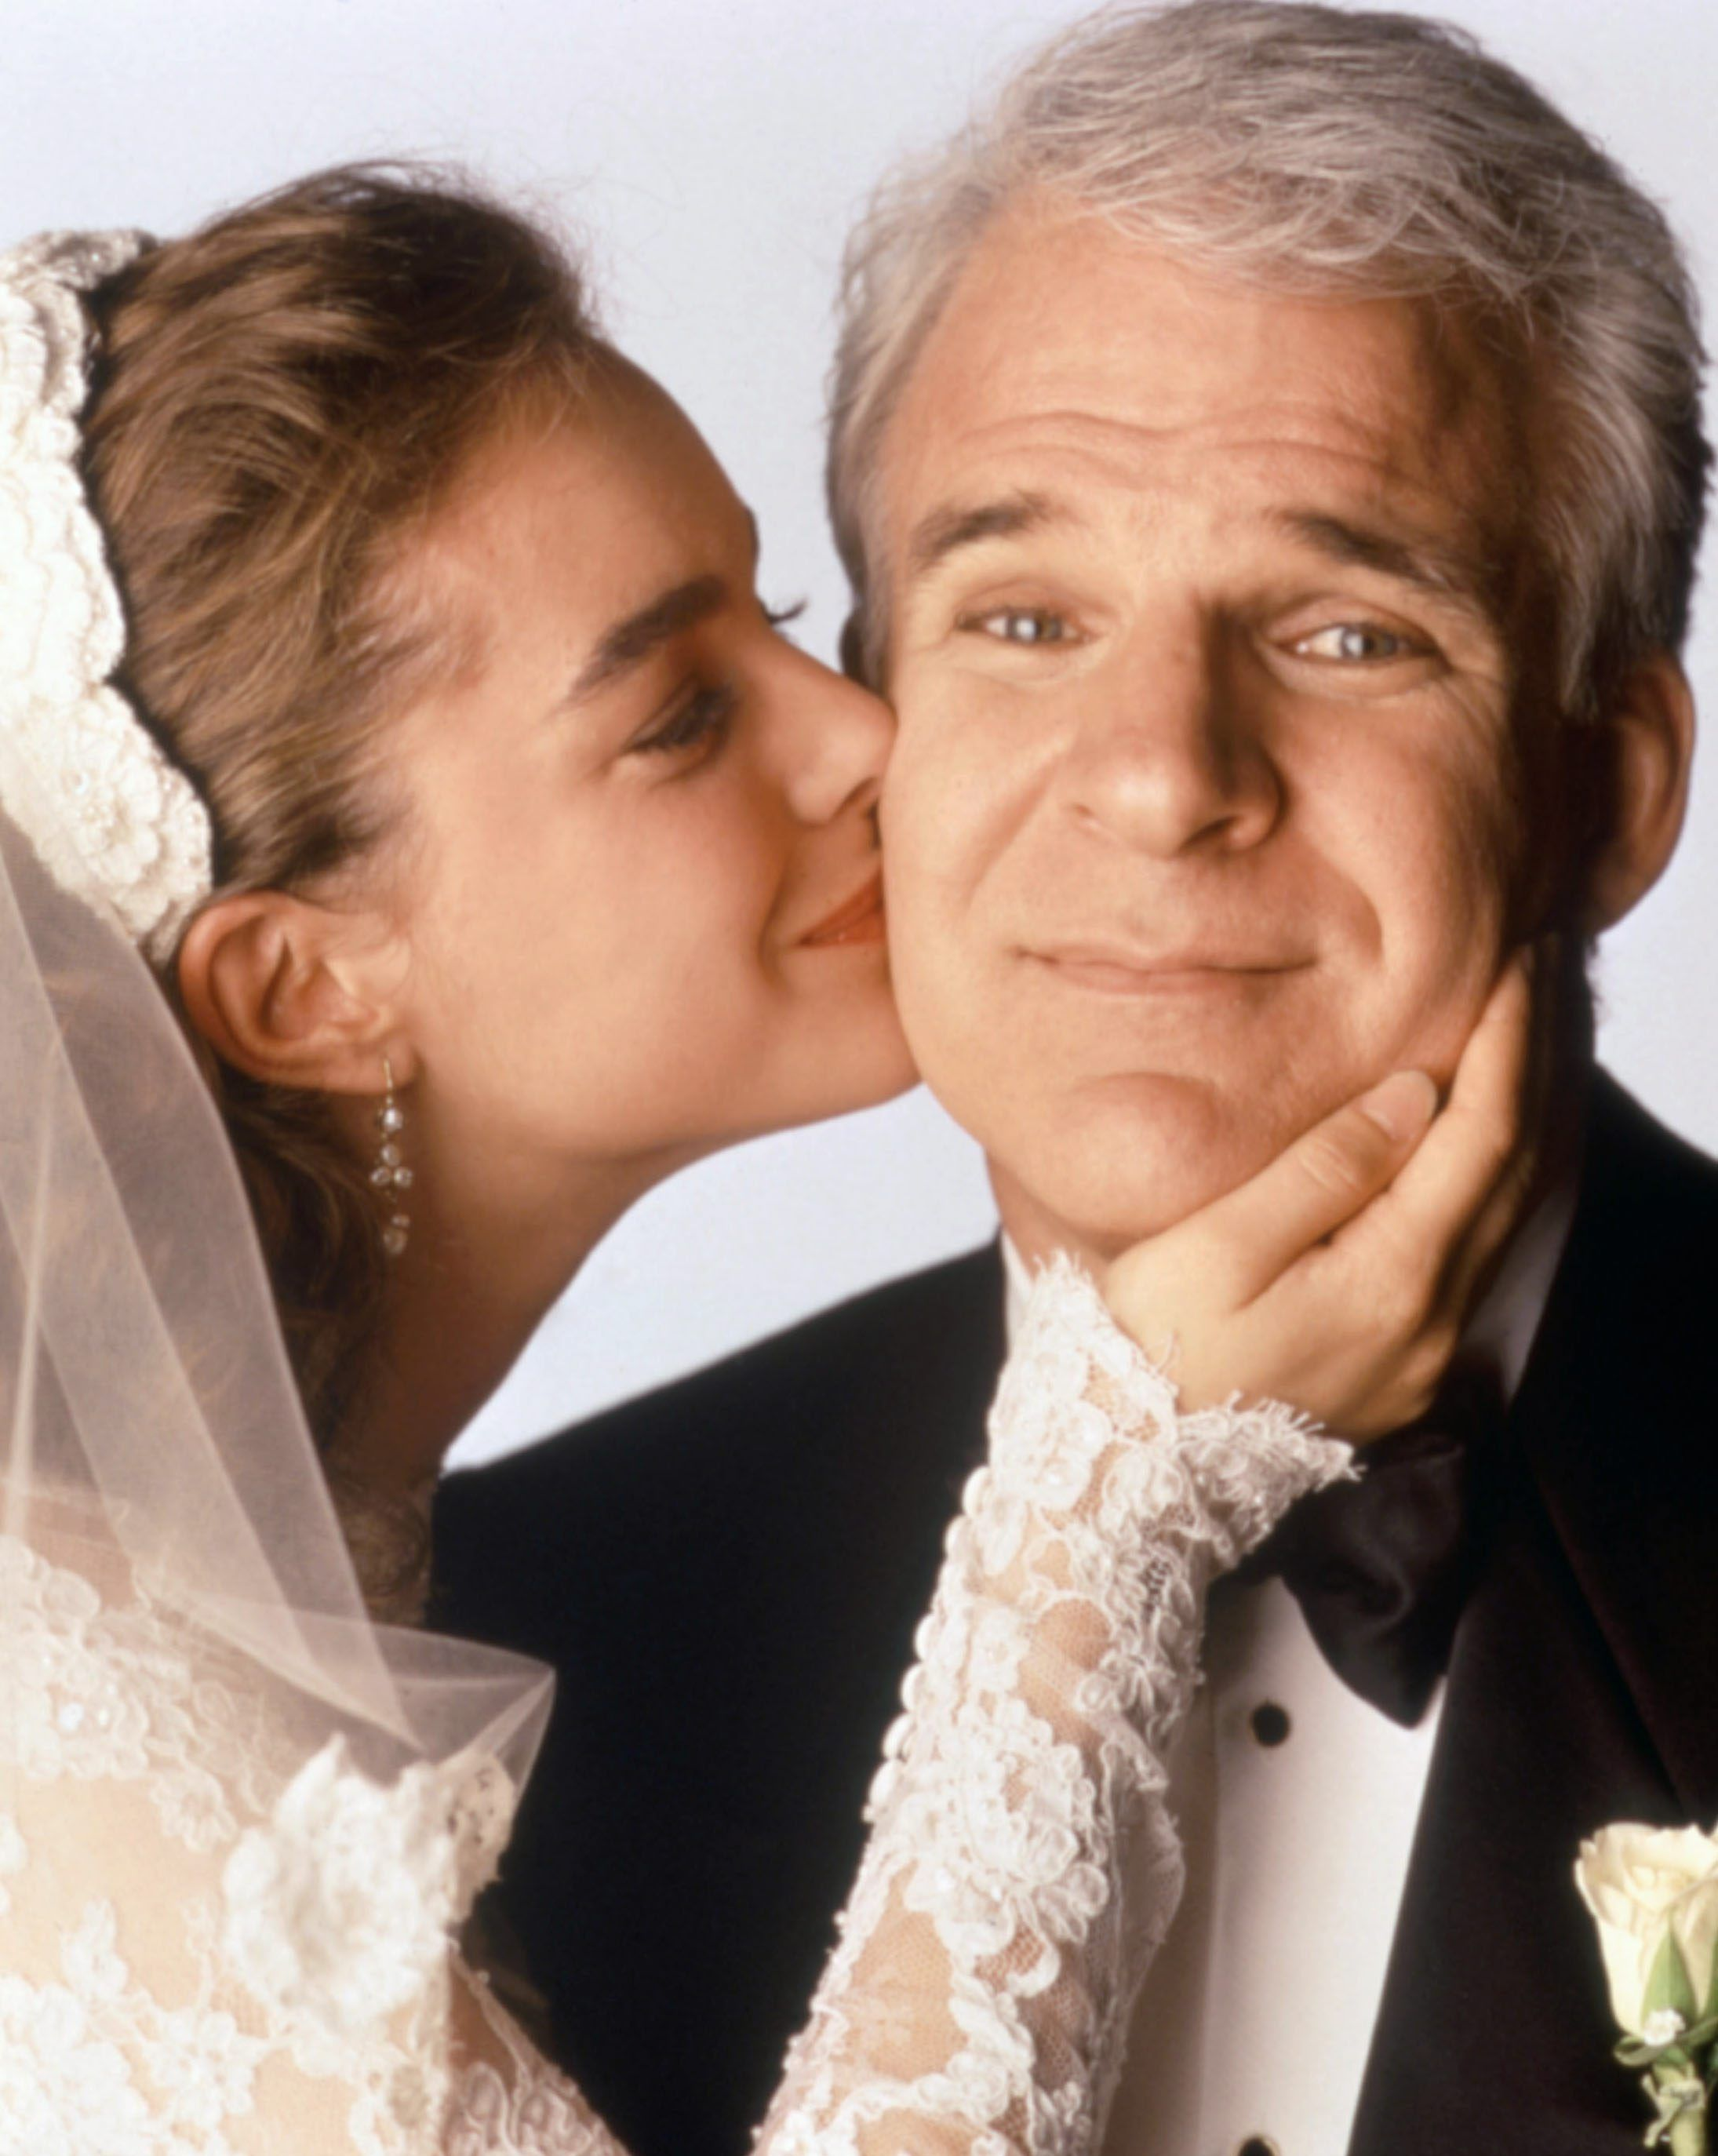 Cast Of Father Of The Bride: Where Are They Now?